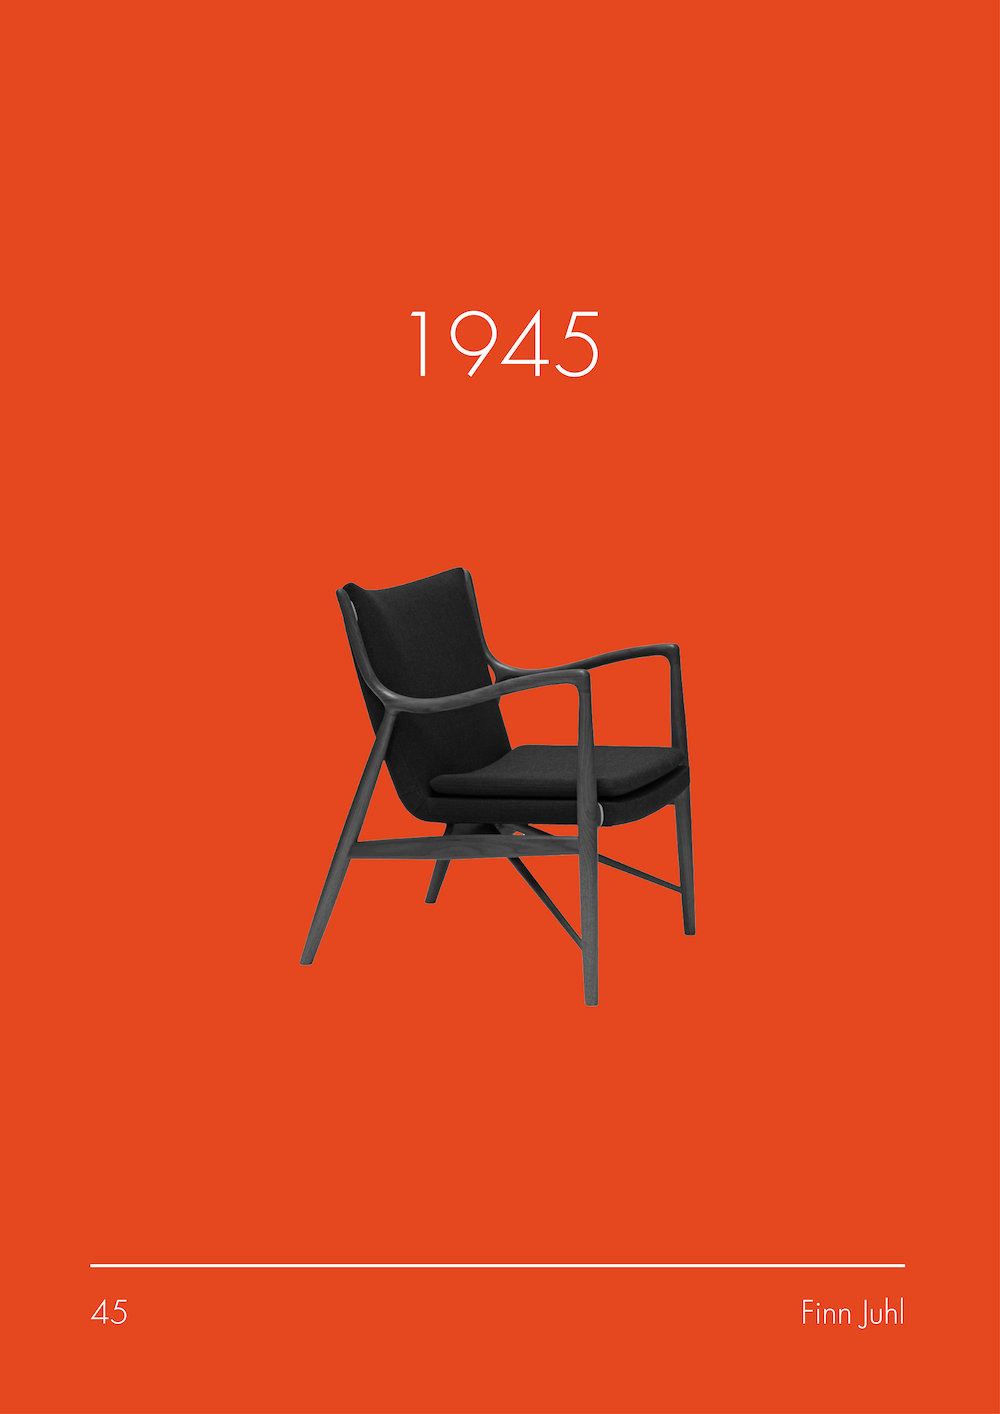 chair poster-07.png